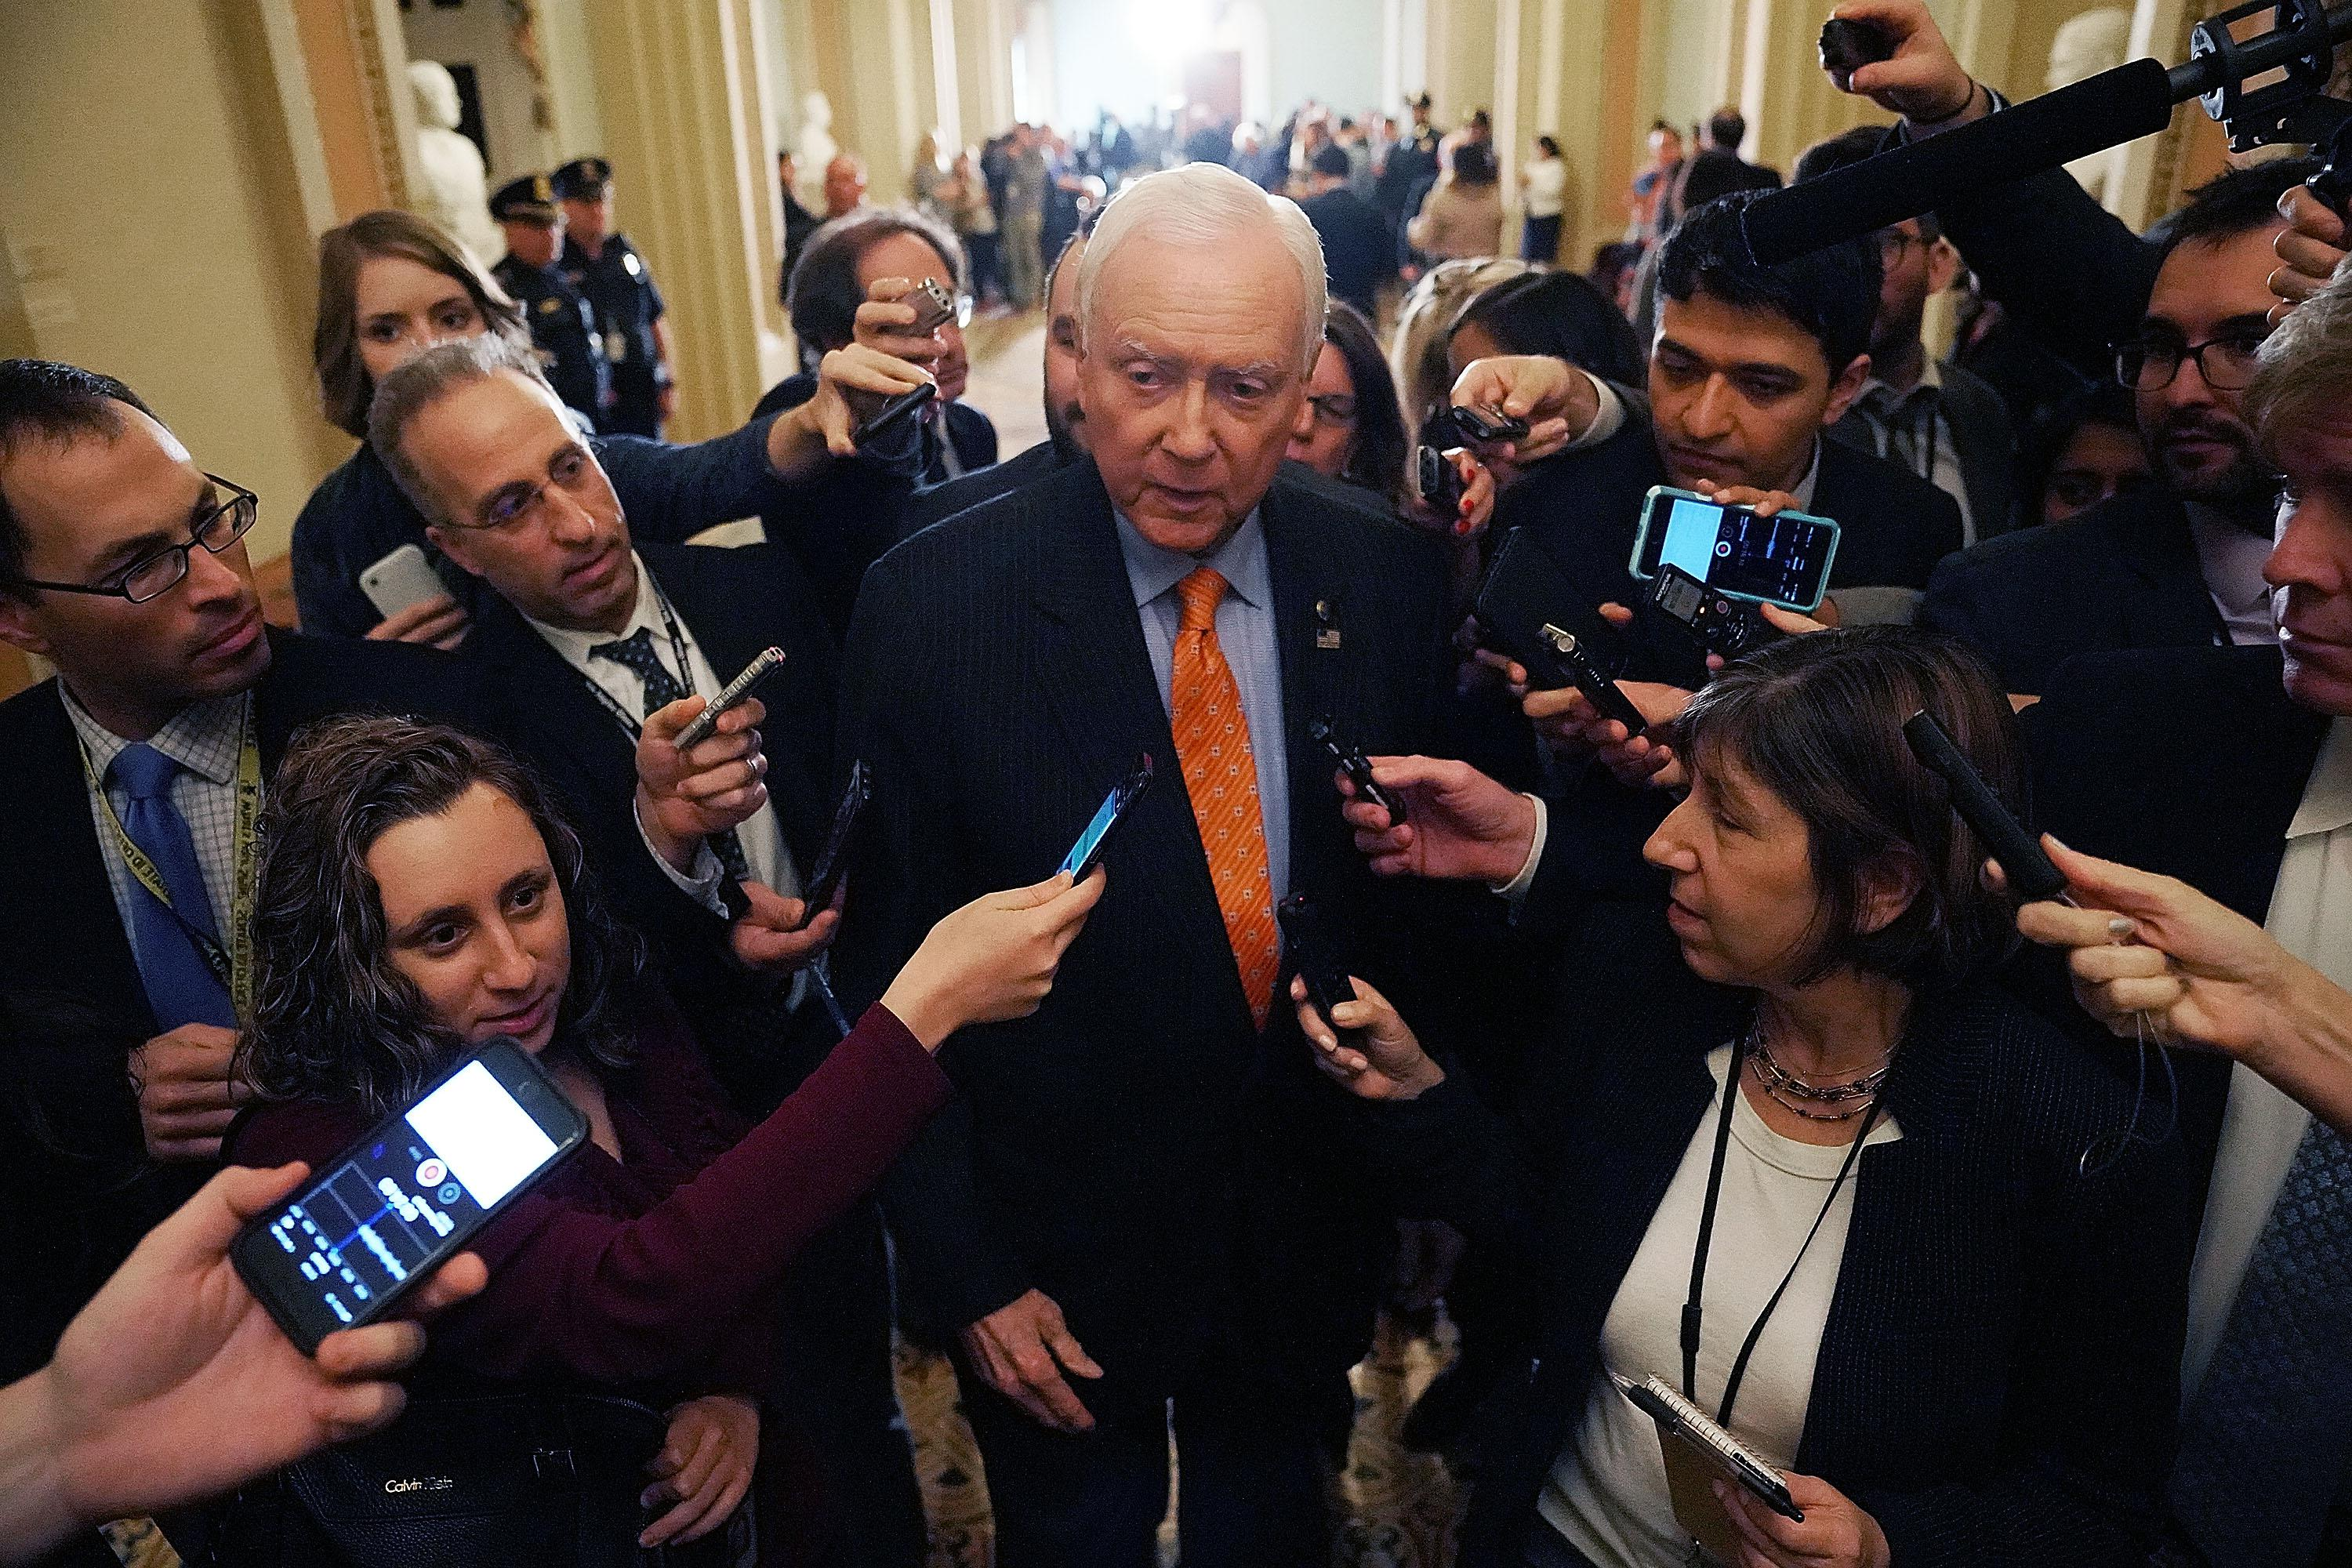 WASHINGTON, DC - NOVEMBER 14:  Senate Finance Committee Chairman Orrin Hatch (R-UT) (C) is surrounded by reporters as he leaves the weekly Senate Republican policy luncheon in the U.S. Capitol November 14, 2017 in Washington, DC. Senate Republicans are considering including a repeal of the Obamacare individual mandate as part of their proposed tax cut and reform legislation, which they want to pass the week after the Thanksgiving holiday.  (Photo by Chip Somodevilla/Getty Images)